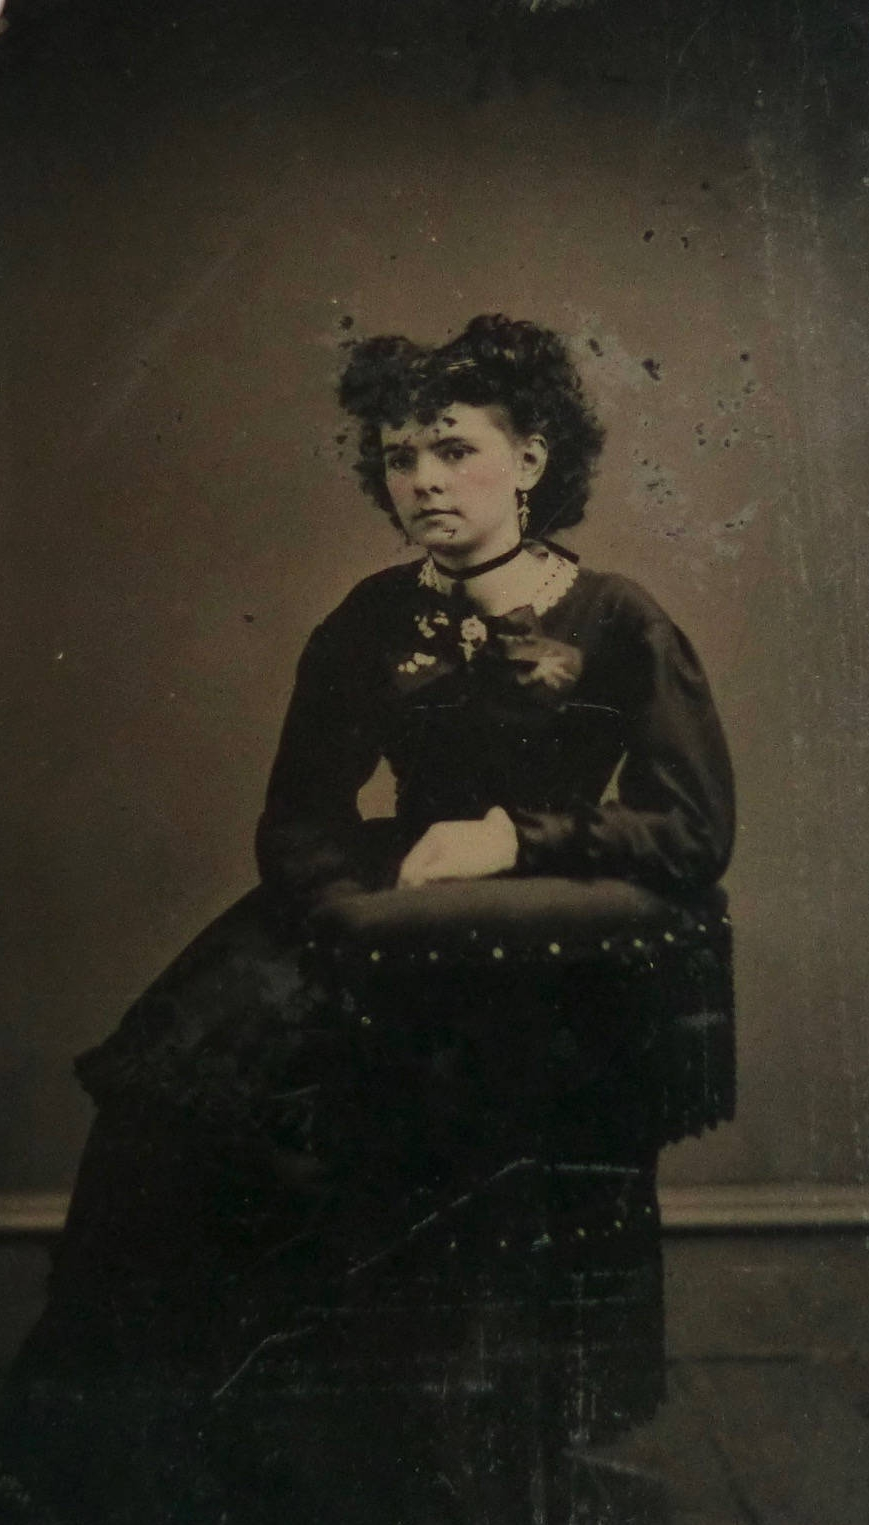 Tintype Photo Pretty Young Woman Great Hair and Victorian Accessories